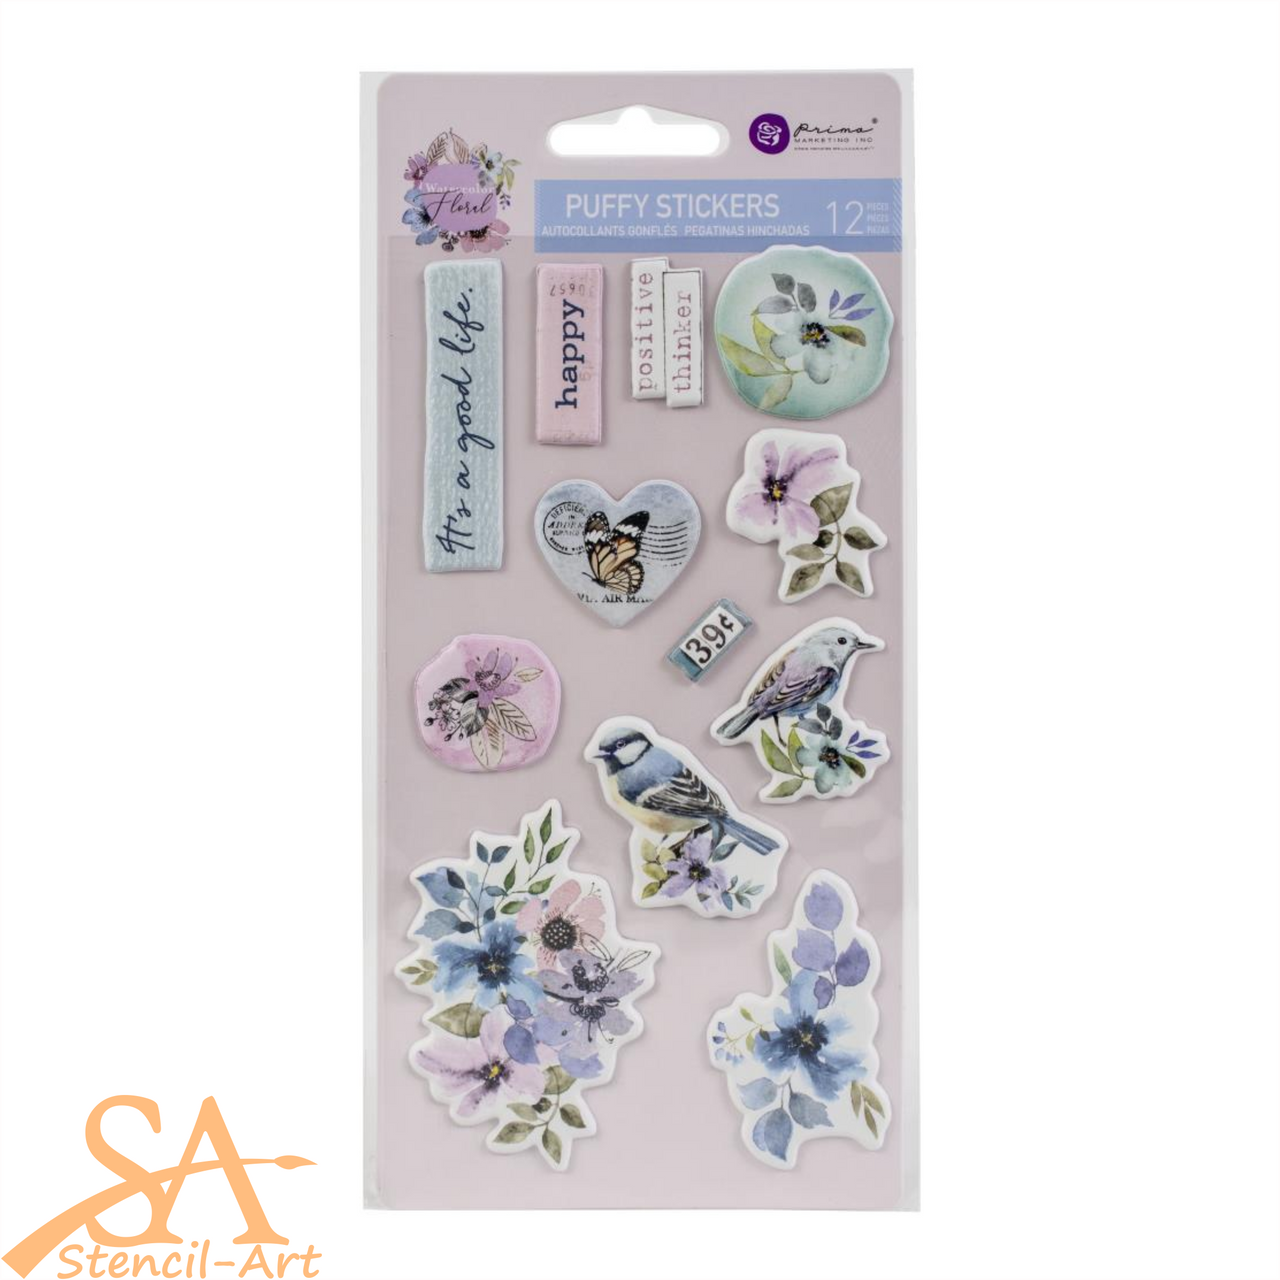 Prima Marketing Puffy Stickers WATERCOLOR FLORAL #651497